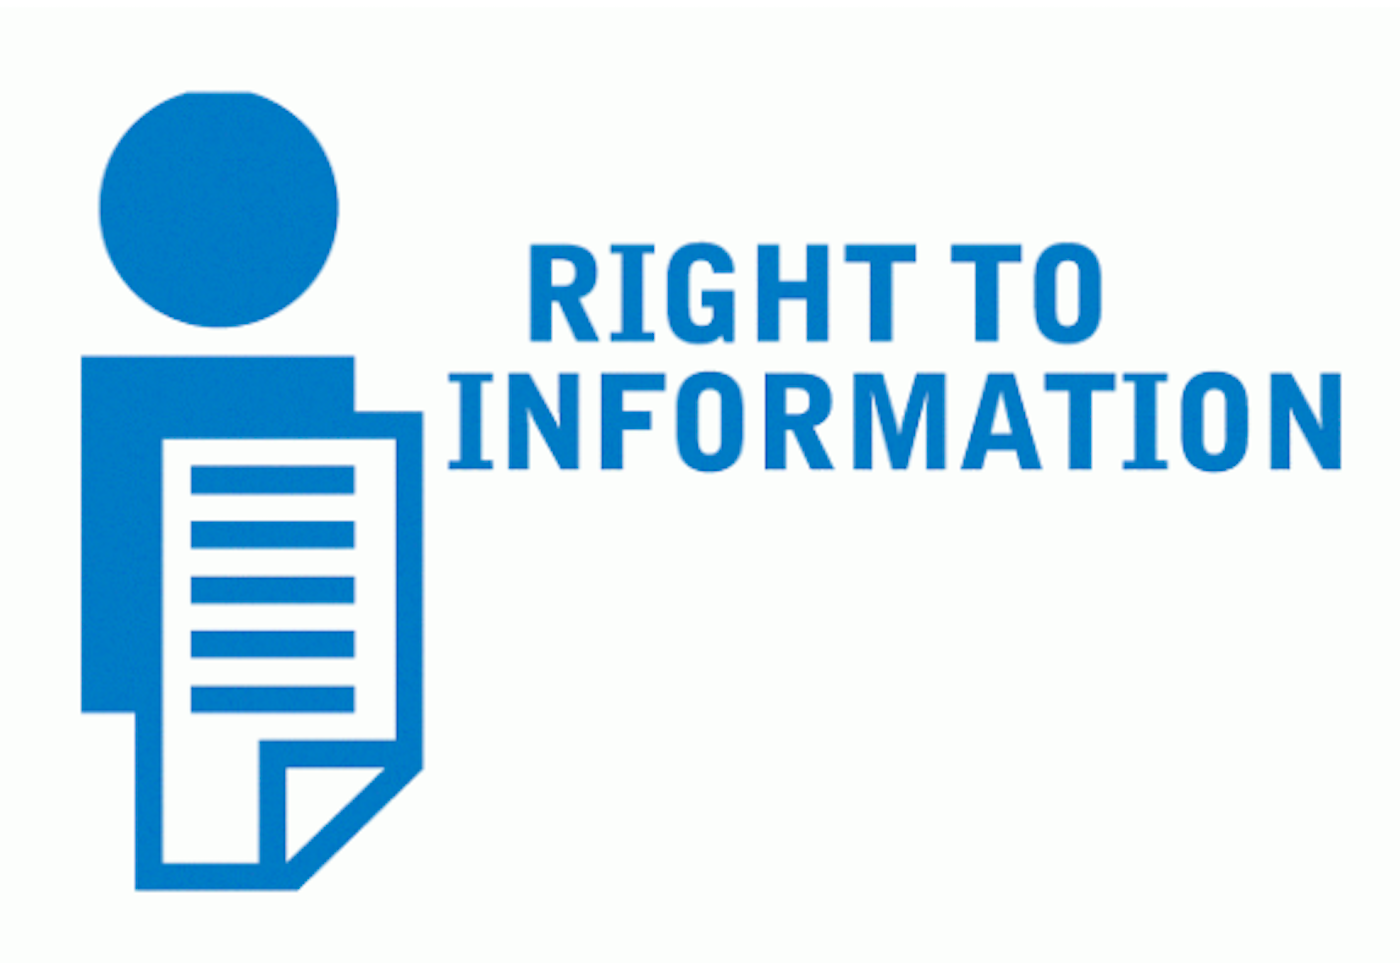 Seven former information commissioners condemn government move to amend RTI Act